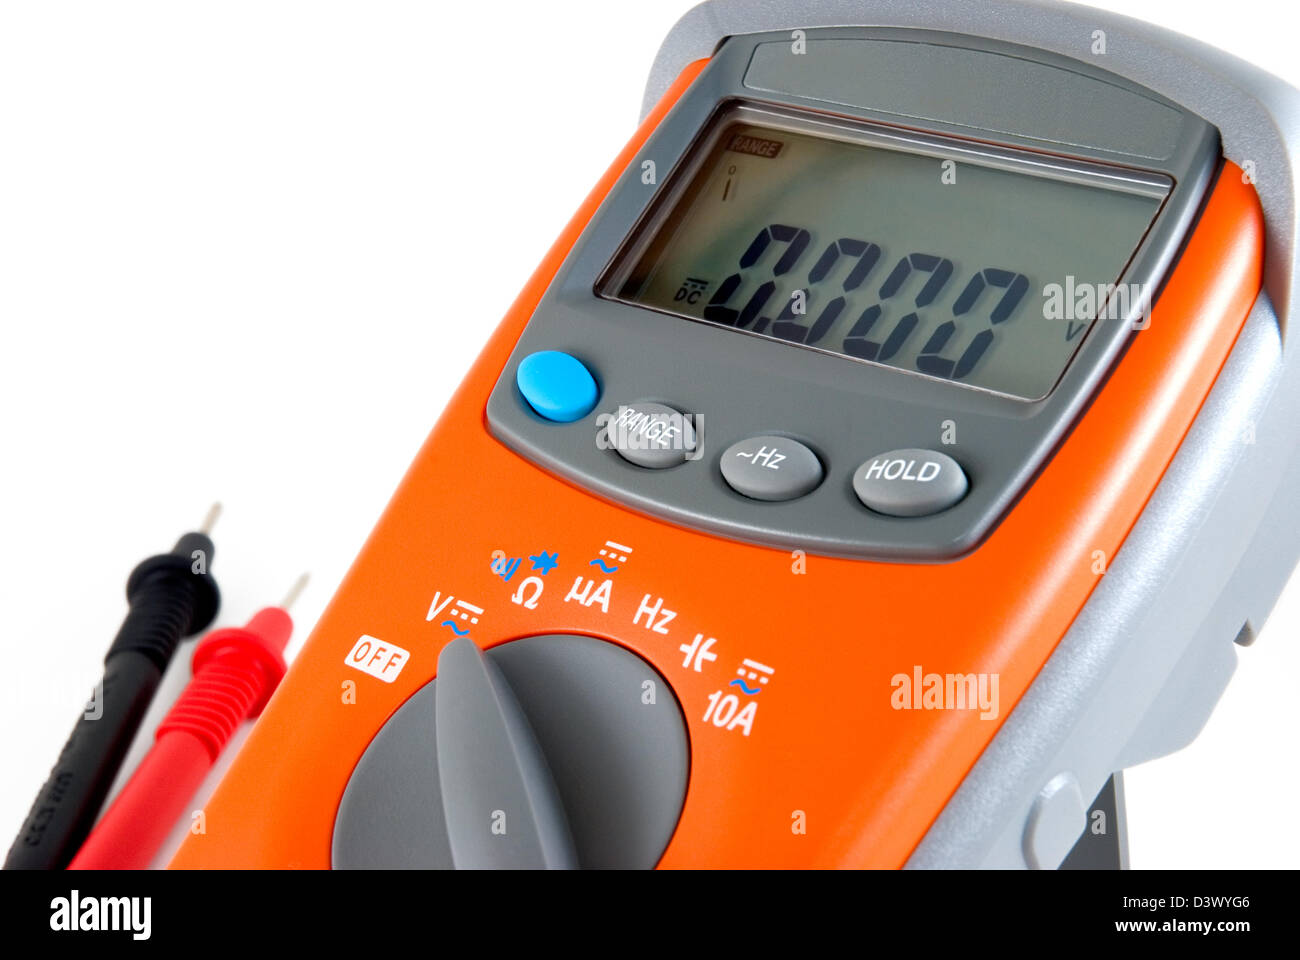 The orange multimeter is photographed on a white background - Stock Image